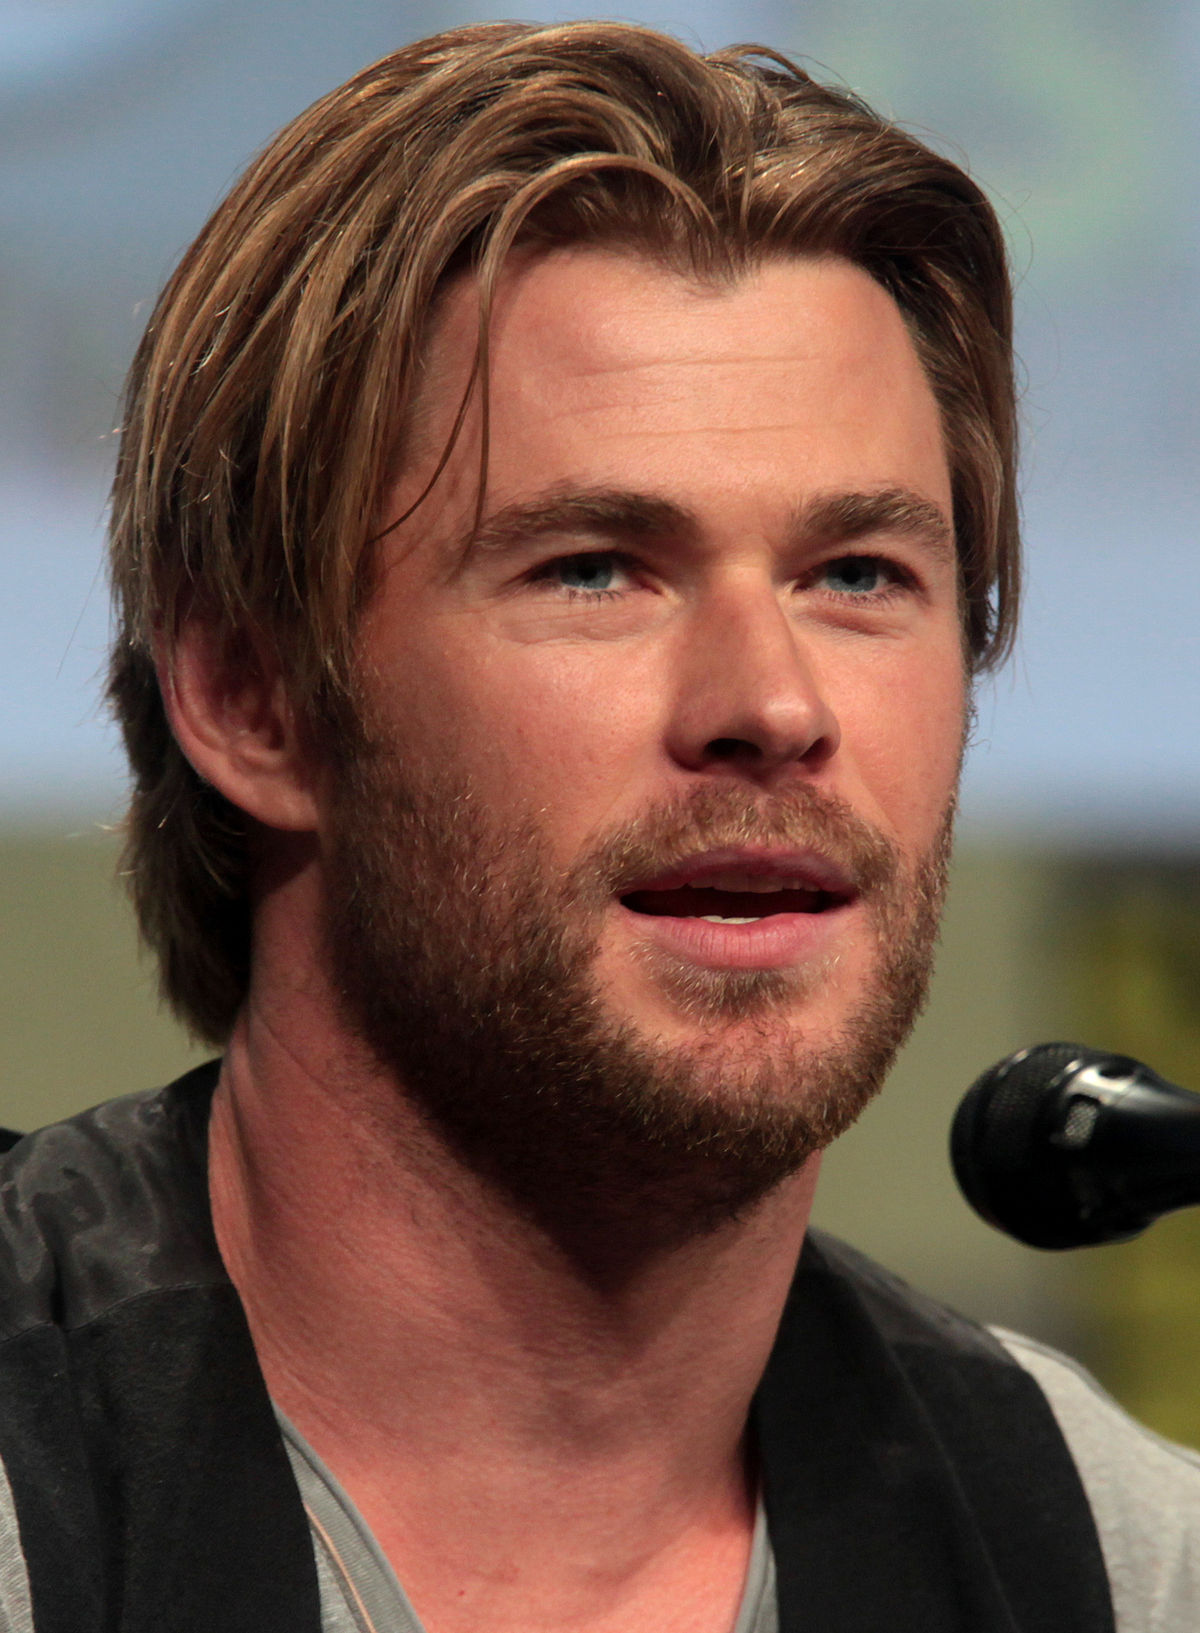 Chris Hemsworth - Wikipedia